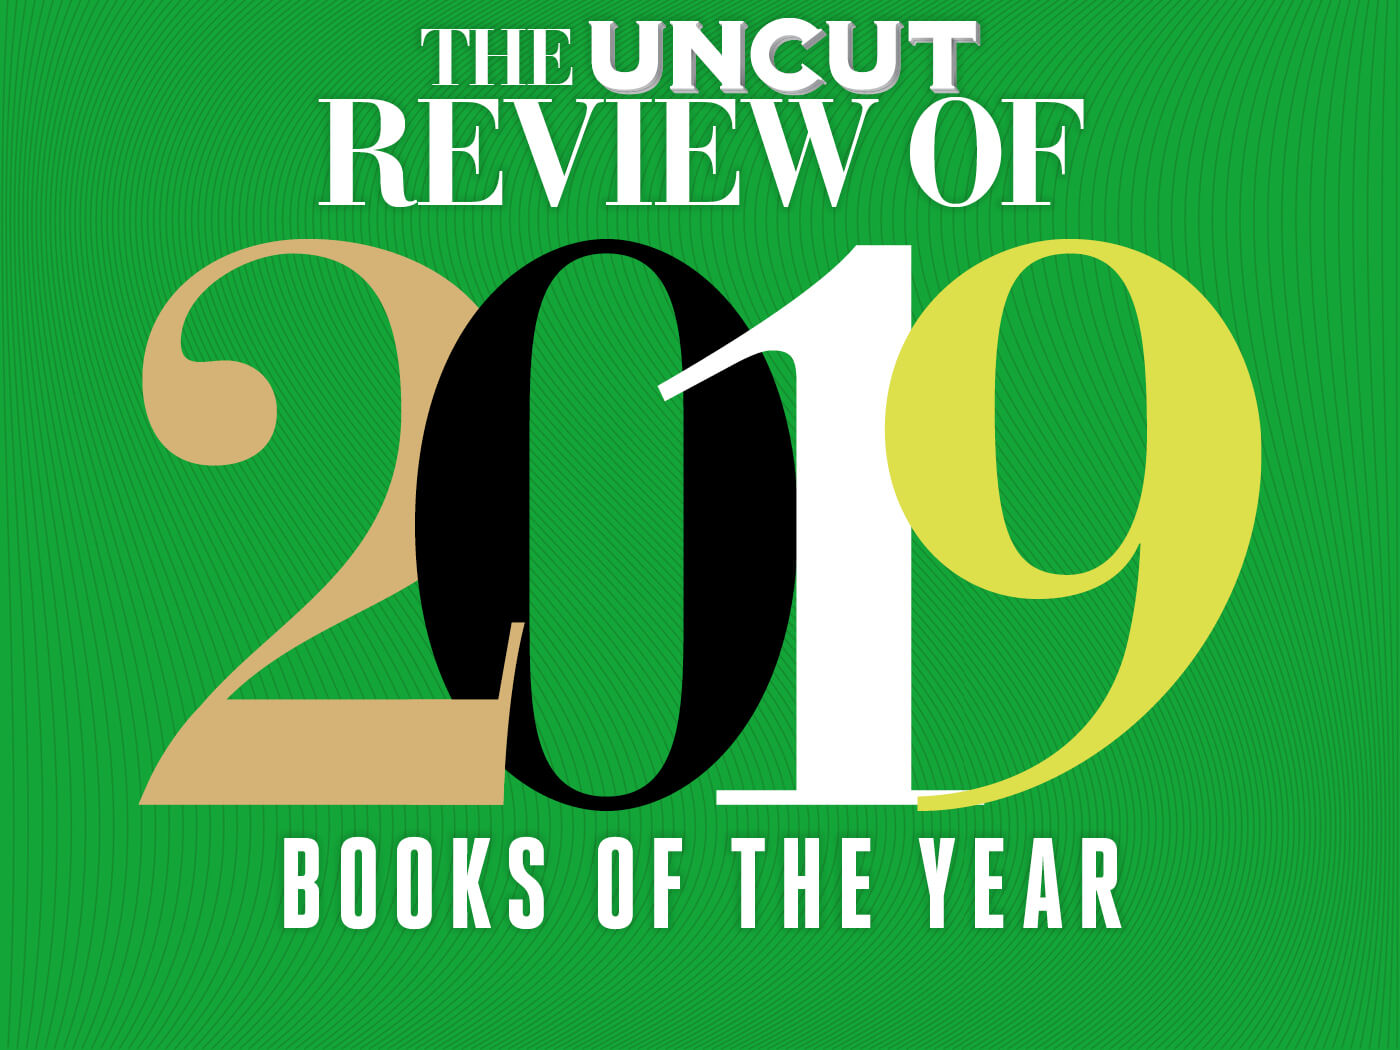 Uncut's best music books of 2019